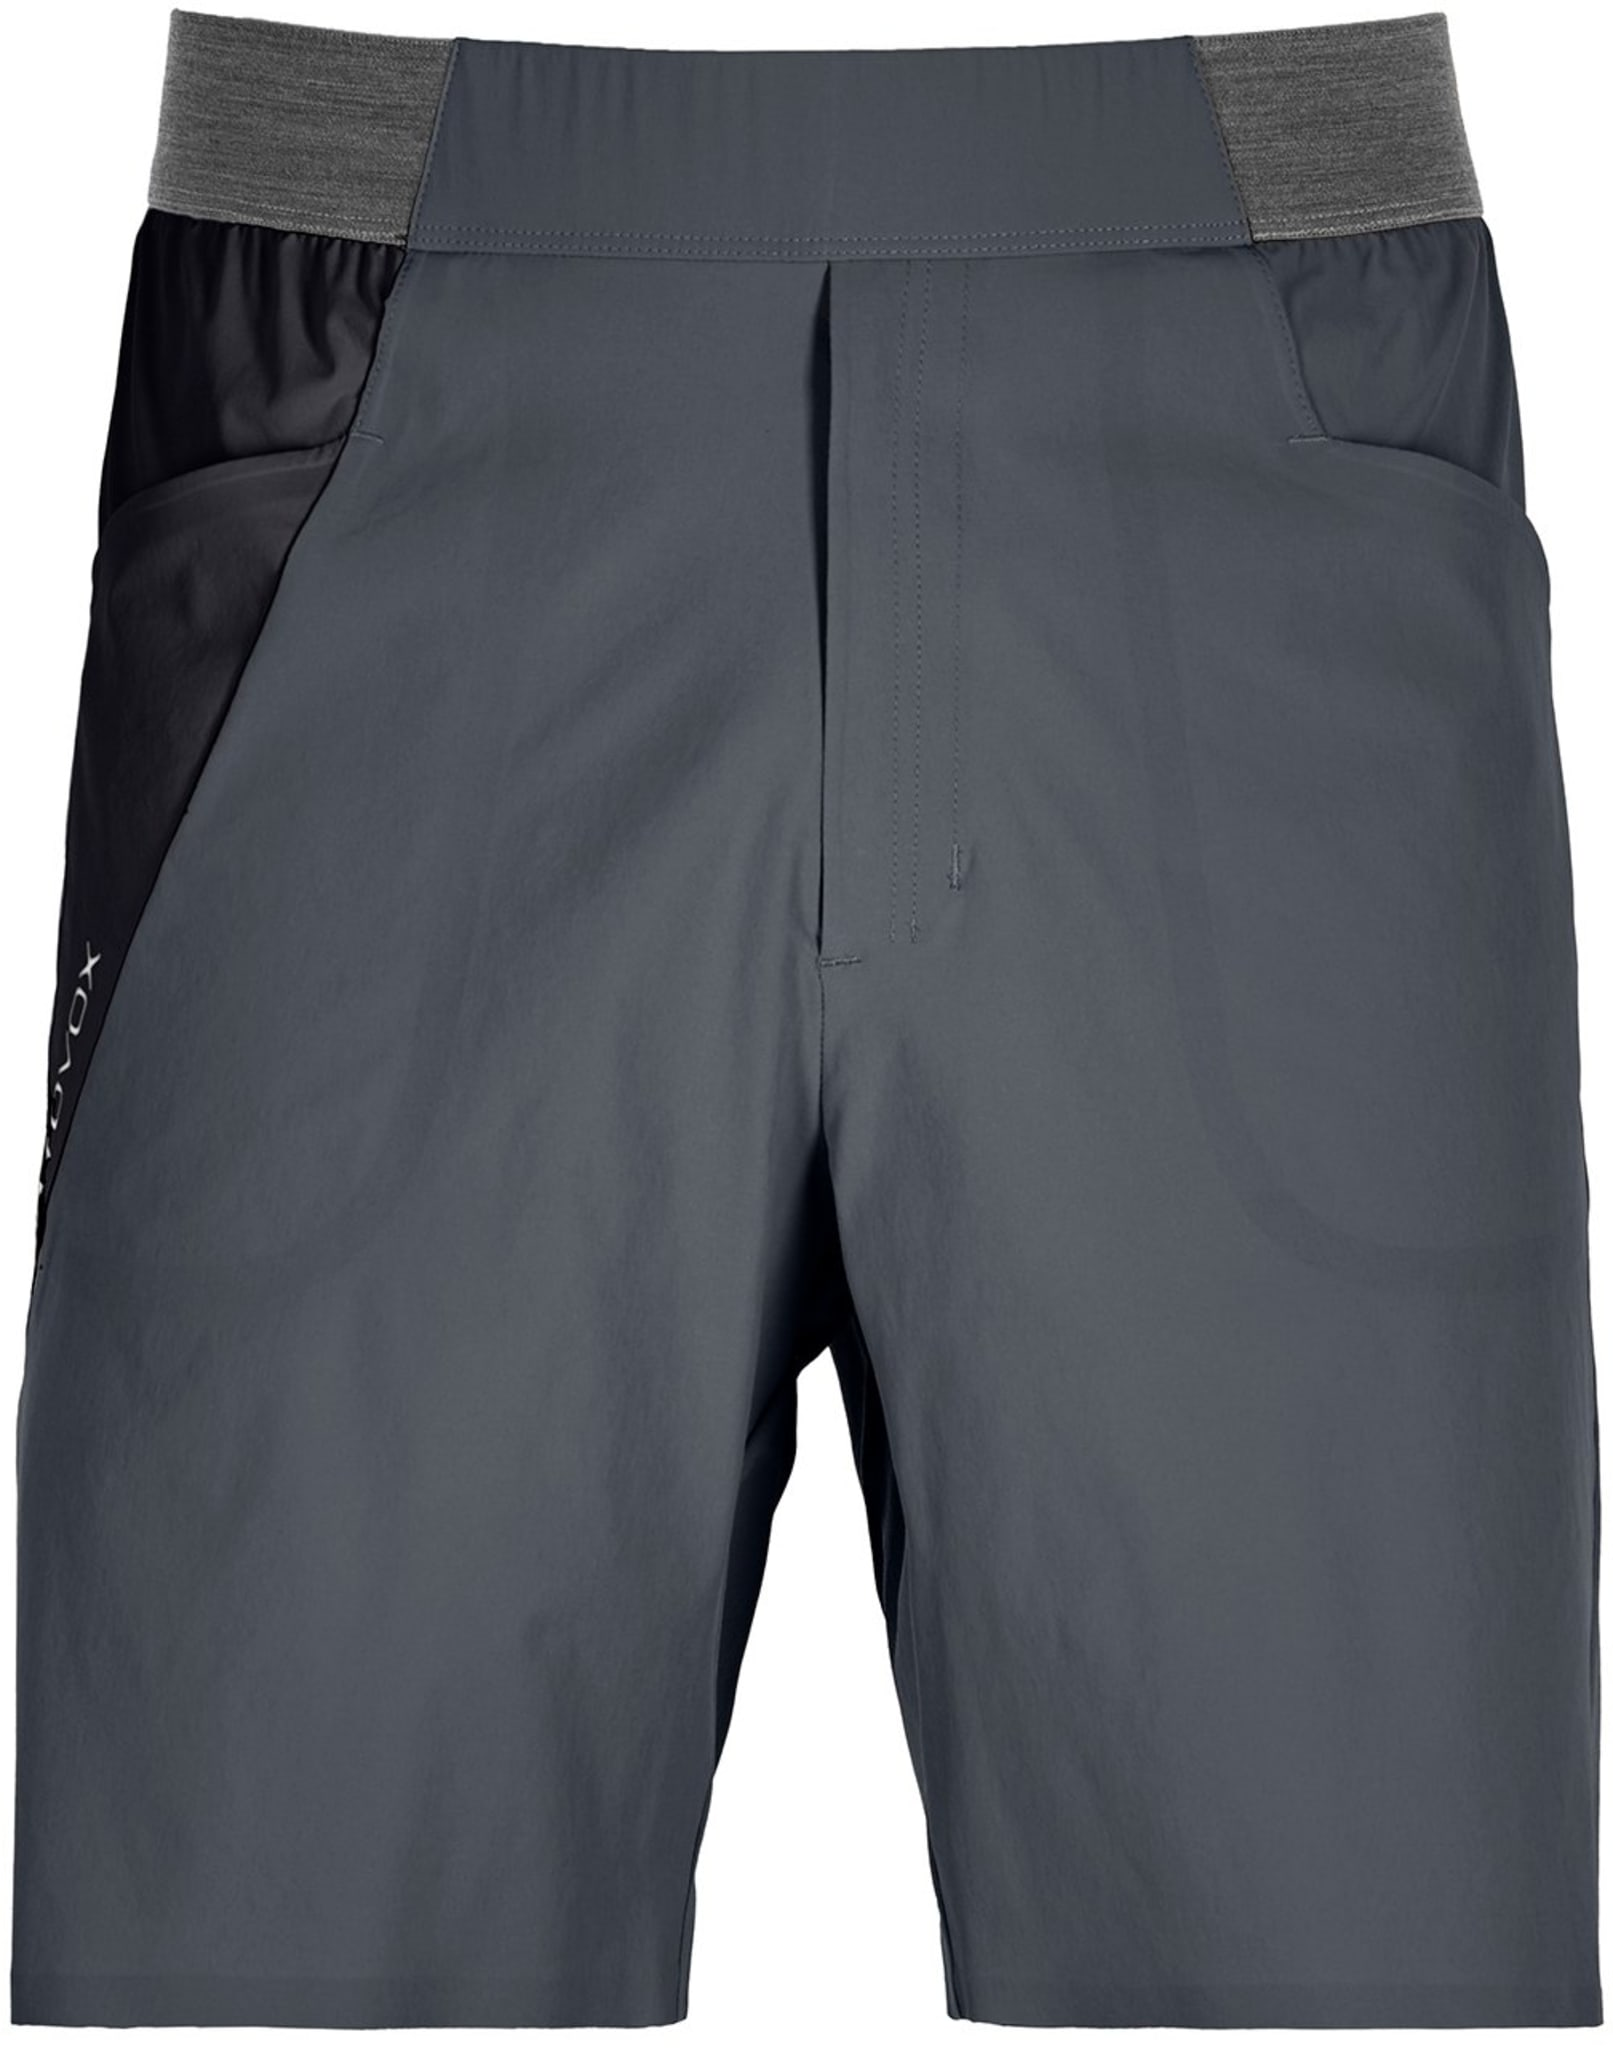 Superlett shorts i stretchmateriale